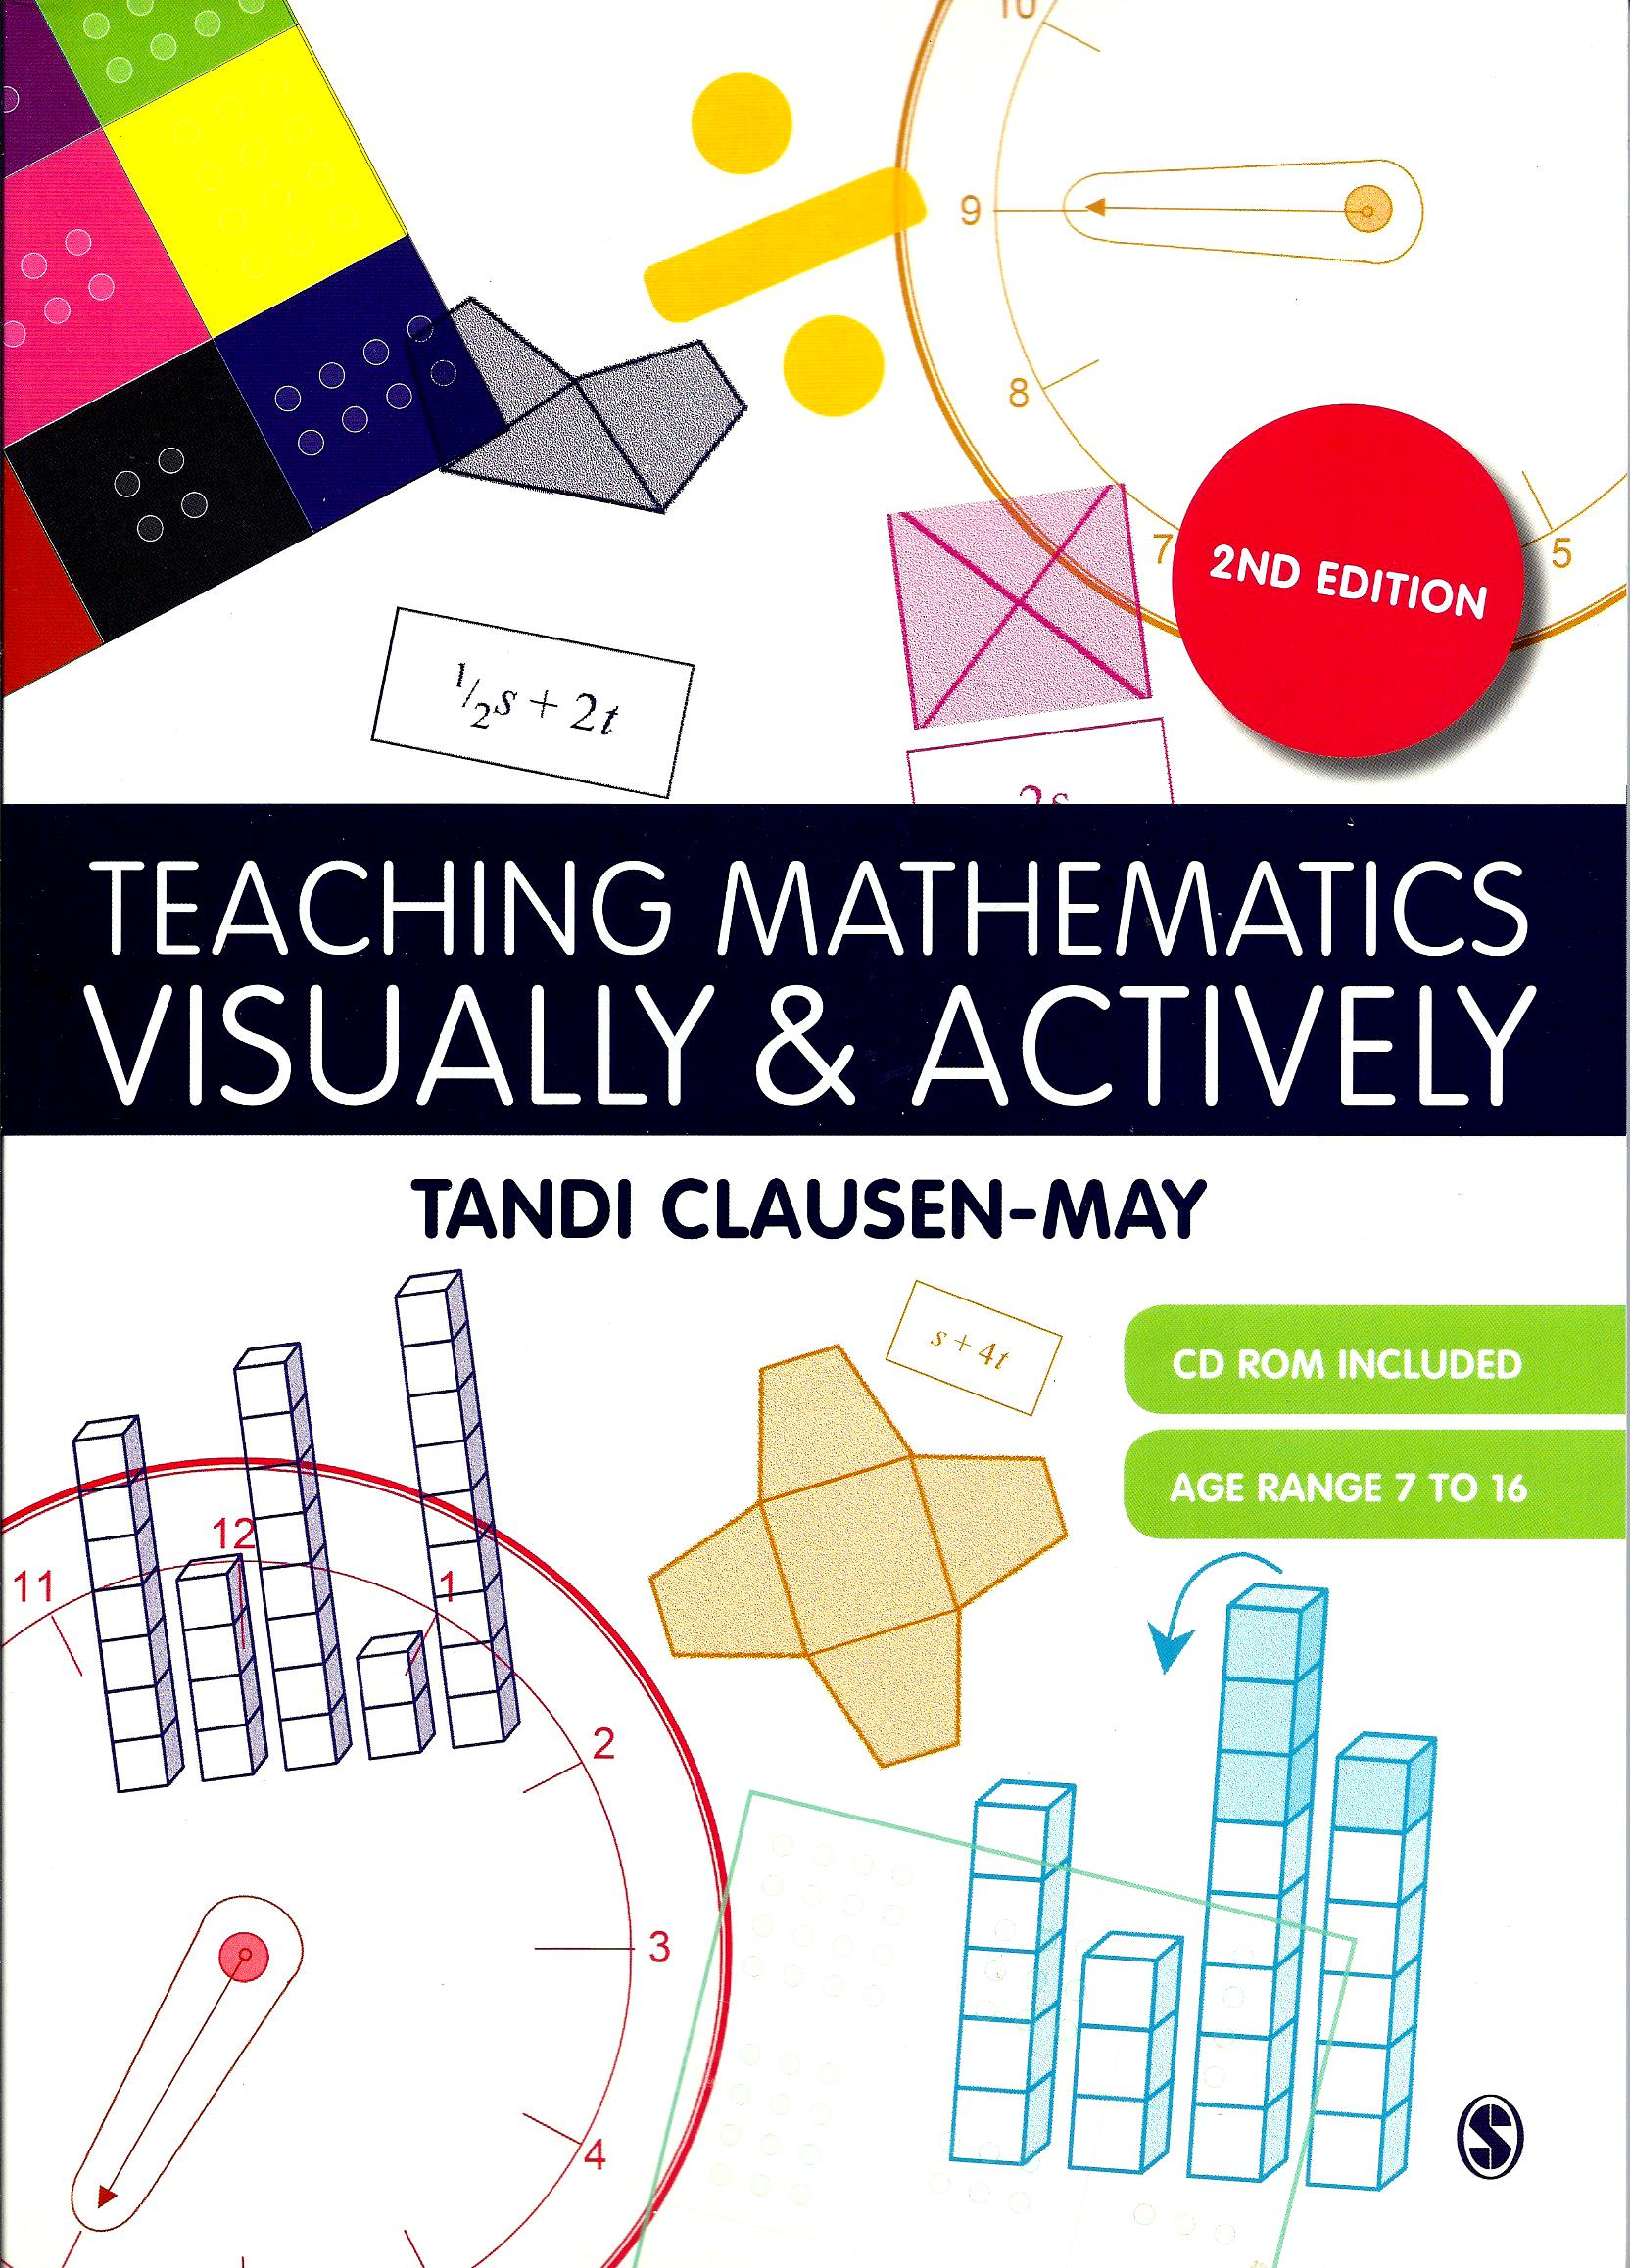 Teaching Mathematics Visually & Actively by Tandi Clausen-May-0